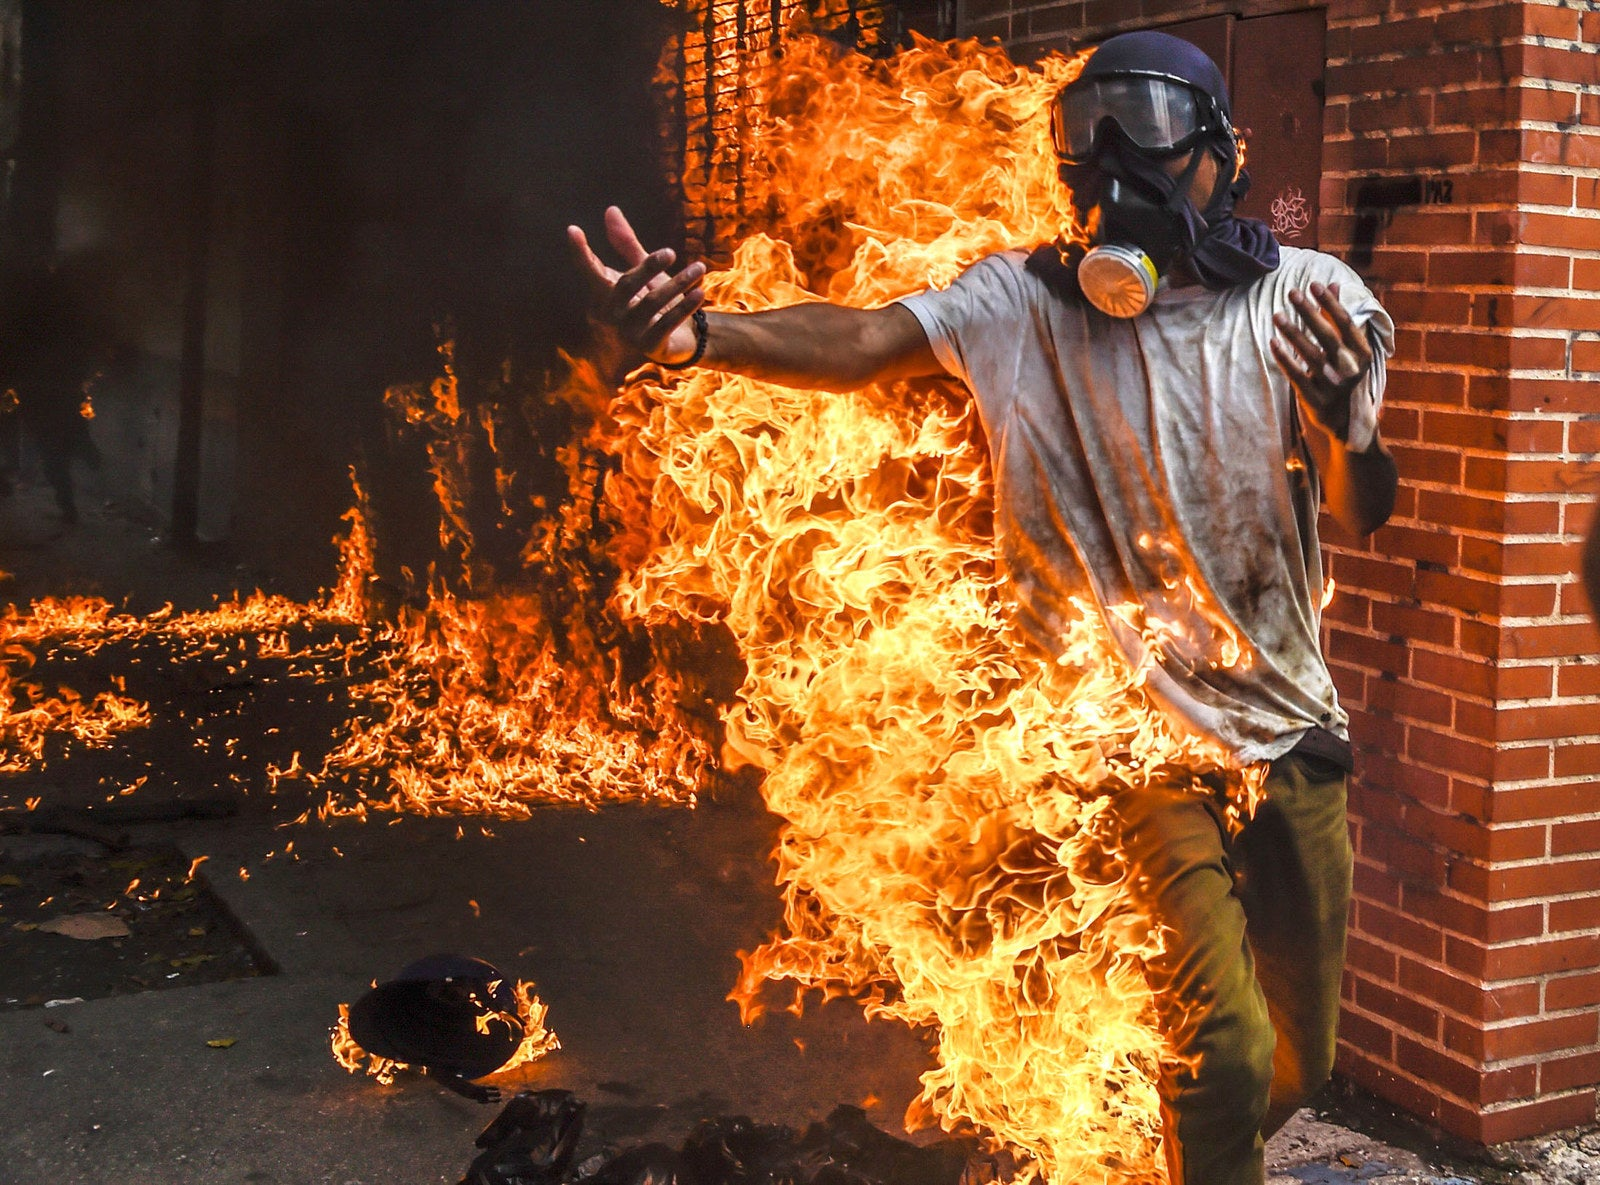 A demonstrator catches fire after the gas tank of a police motorbike exploded during clashes in a protest against Venezuelan President Nicolas Maduro in Caracas on May 3.